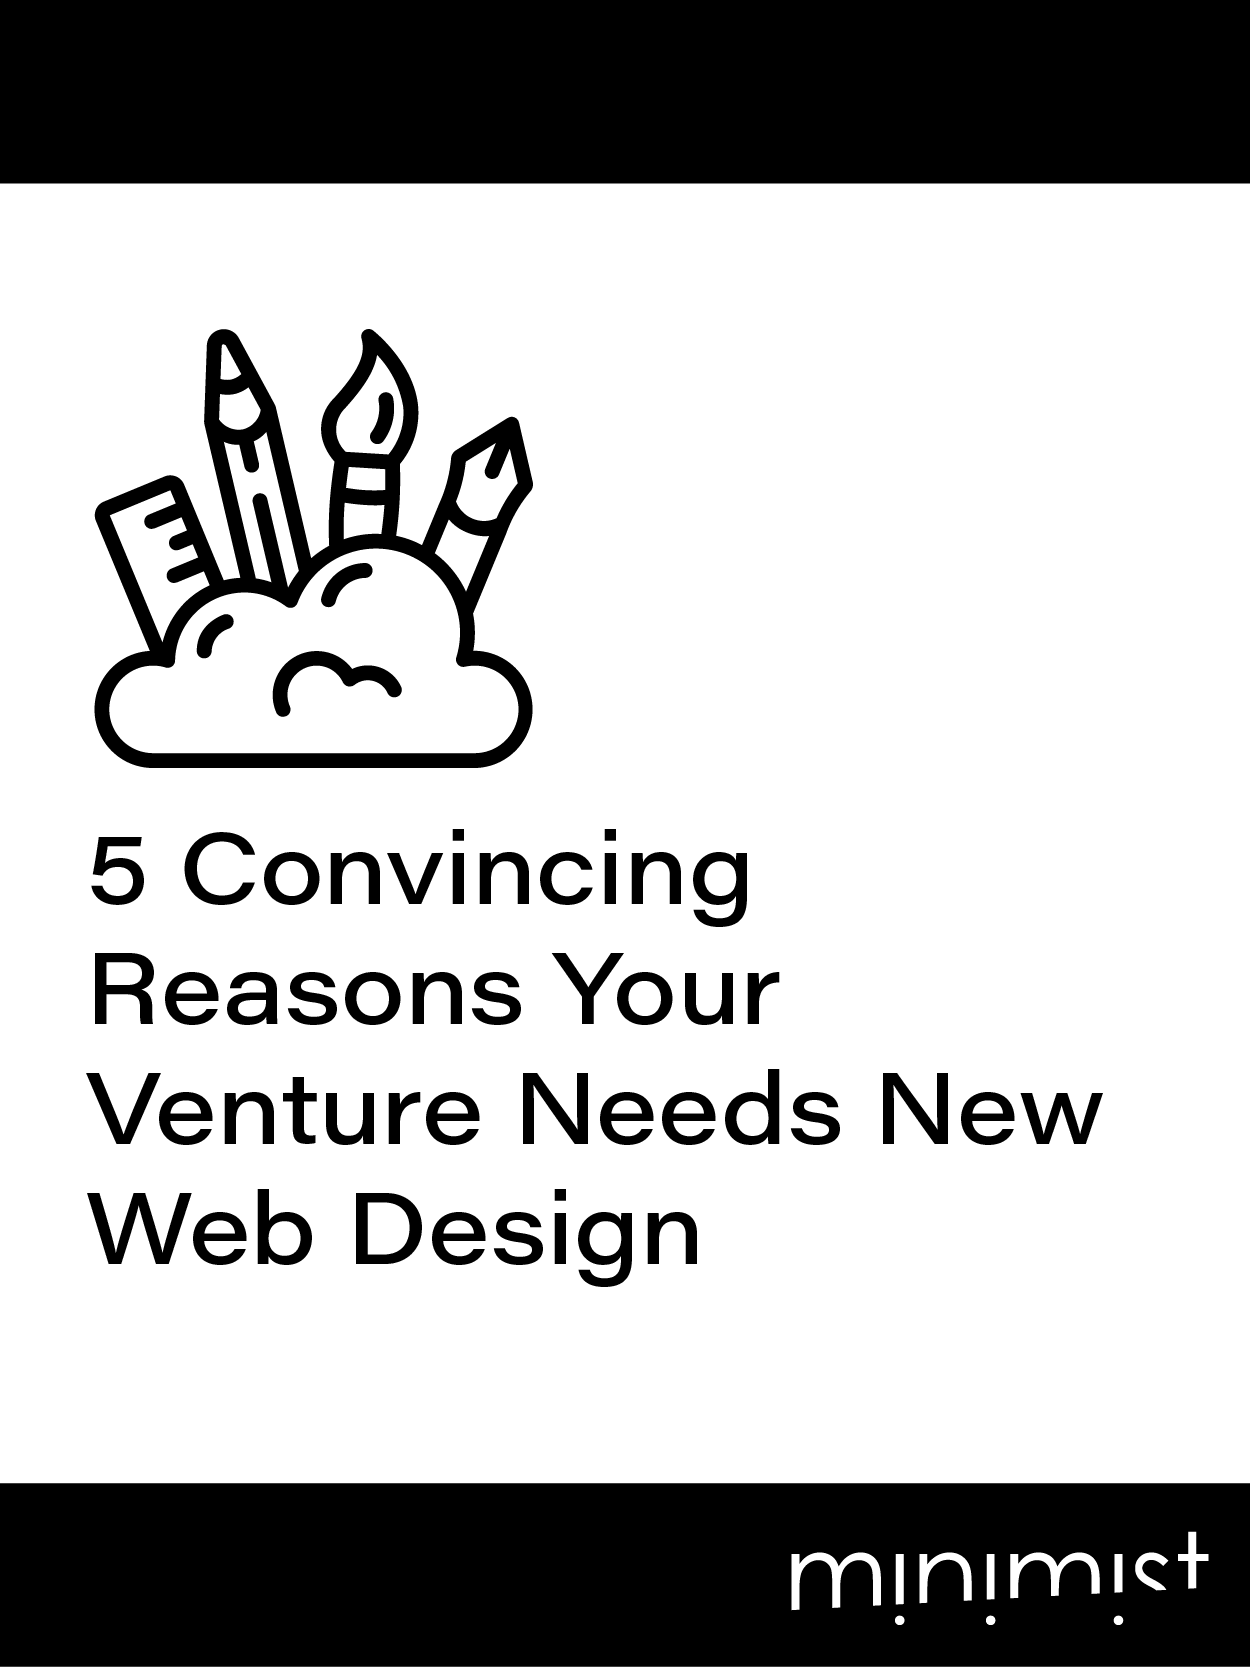 5 Convincing Reasons Your Venture Needs New Web Design